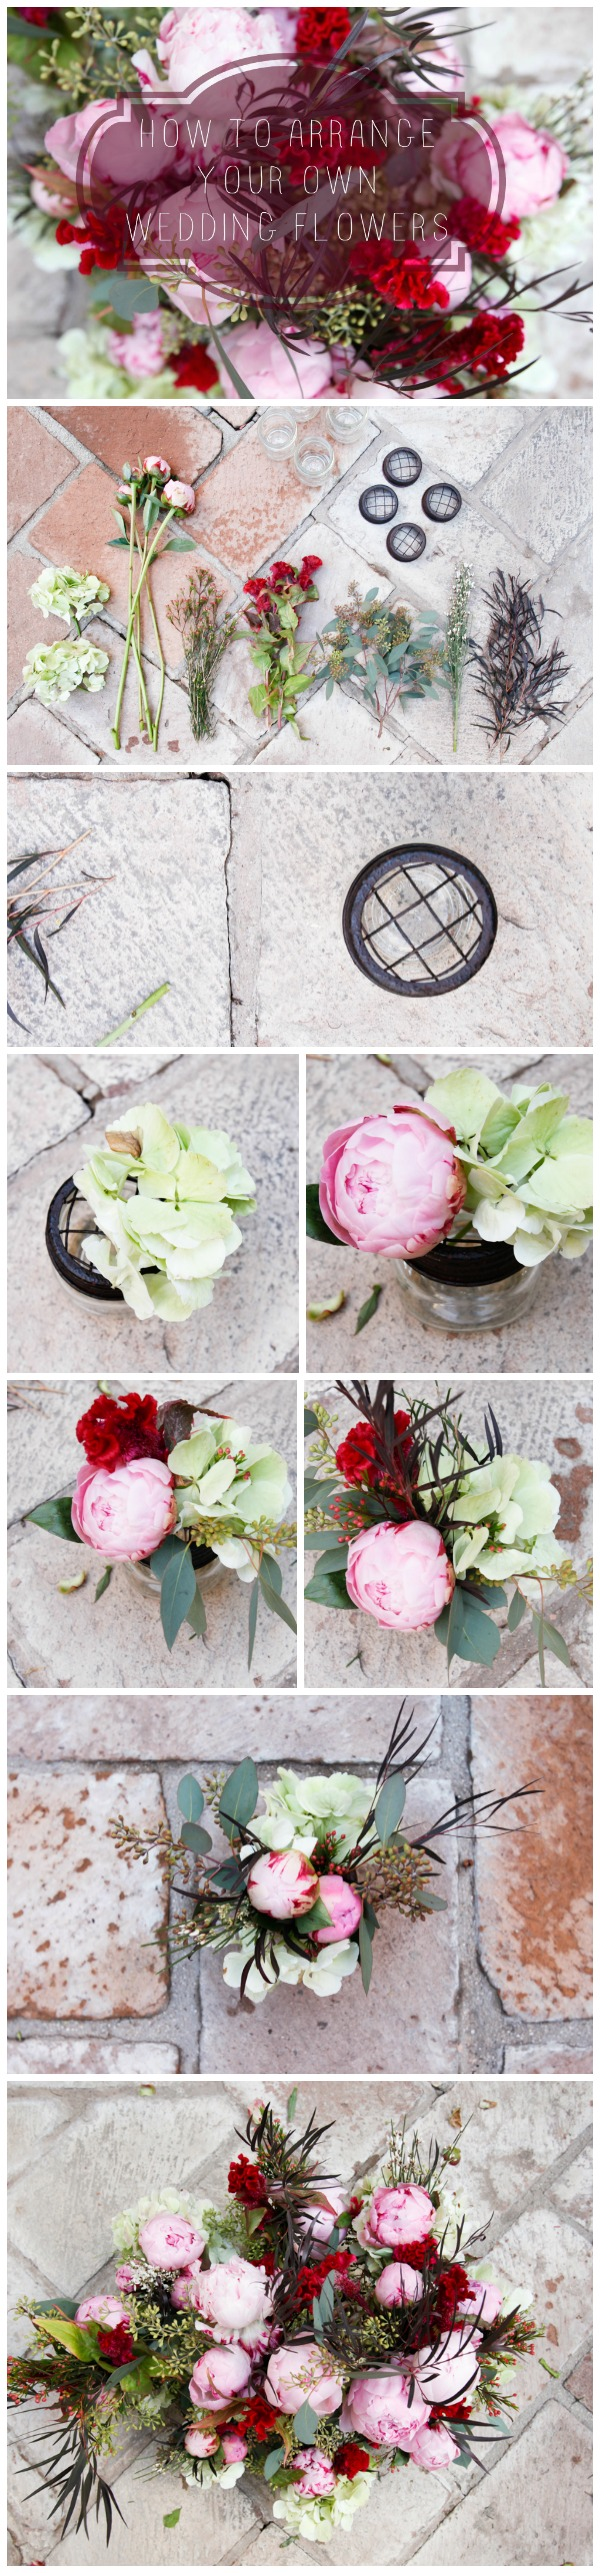 how to make your own rustic wedding cake how to make your own peony centerpieces rustic wedding chic 16074